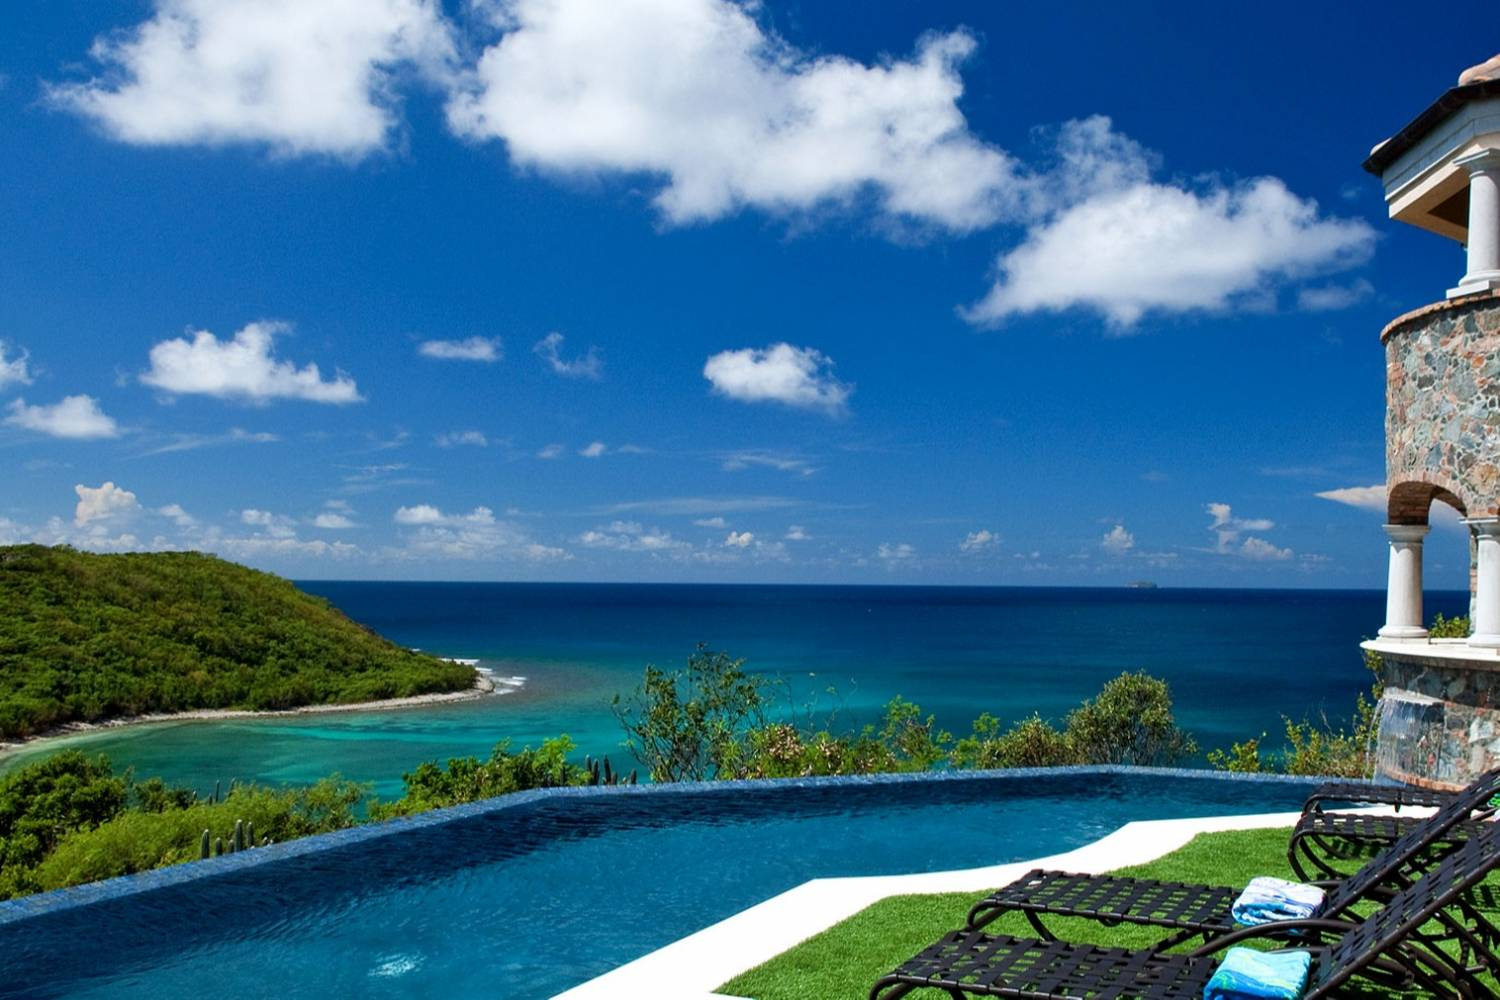 Enjoy every second of Coral Bay, St. John. Book a Private Chef for the ultimate dinning experience, header